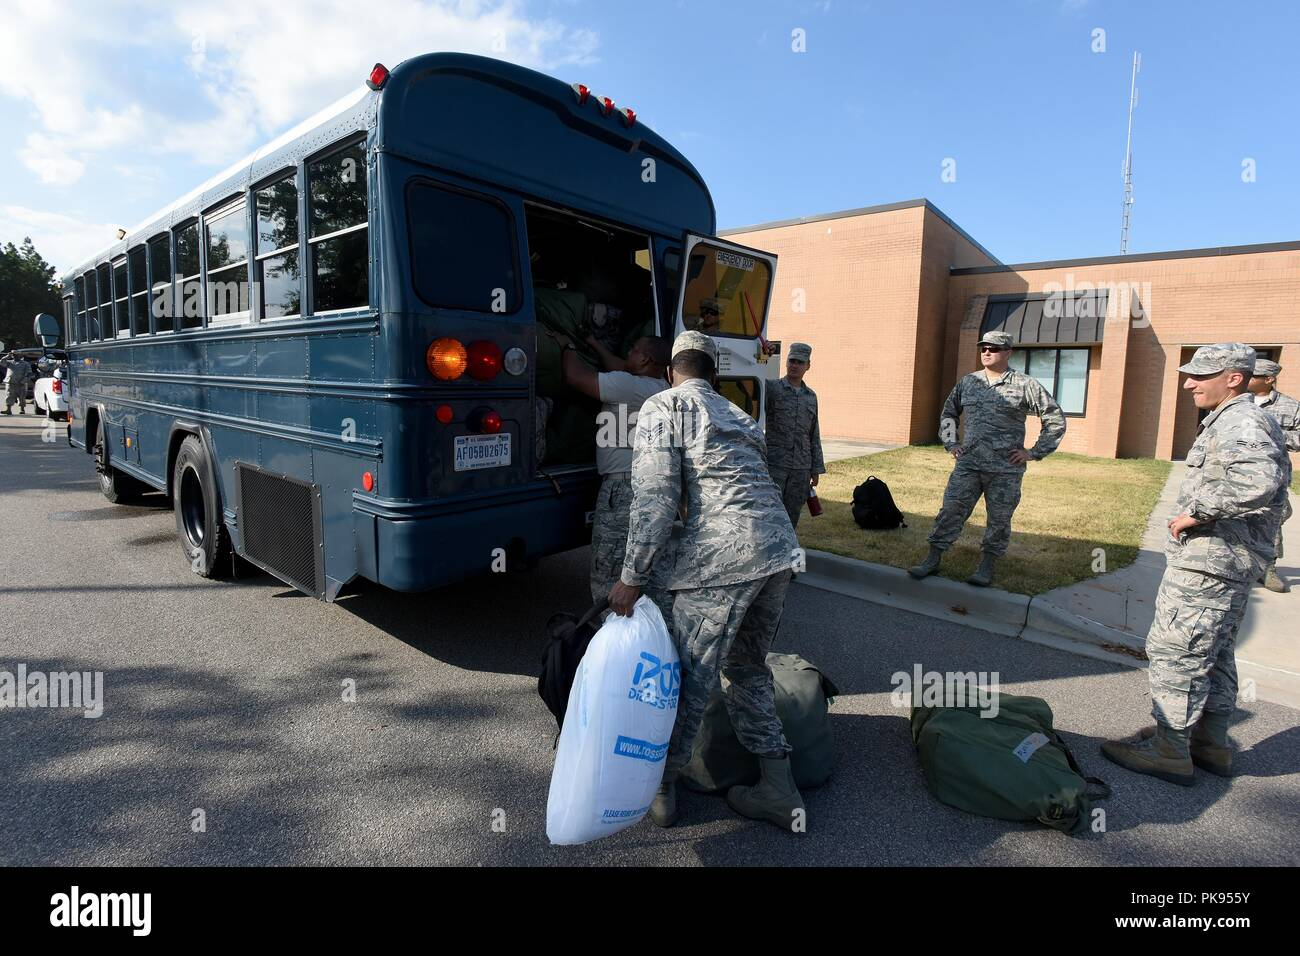 U.S. Airmen from the South Carolina Air National Guard and 169th Fighter Wing, prepare to deploy from McEntire Joint National Guard Base to Bluffton, South Carolina, to support partnered civilian agencies and safeguard the citizens of the state in advance of Hurricane Florence, September 10, 2018, September 10, 2018. Approximately 800 South Carolina National Guard Soldiers and Airmen have been mobilized to prepare, respond and participate in recovery efforts as forecasters project Hurricane Florence will increase in strength with potential to be a Category 4 storm and a projected path to make  - Stock Image